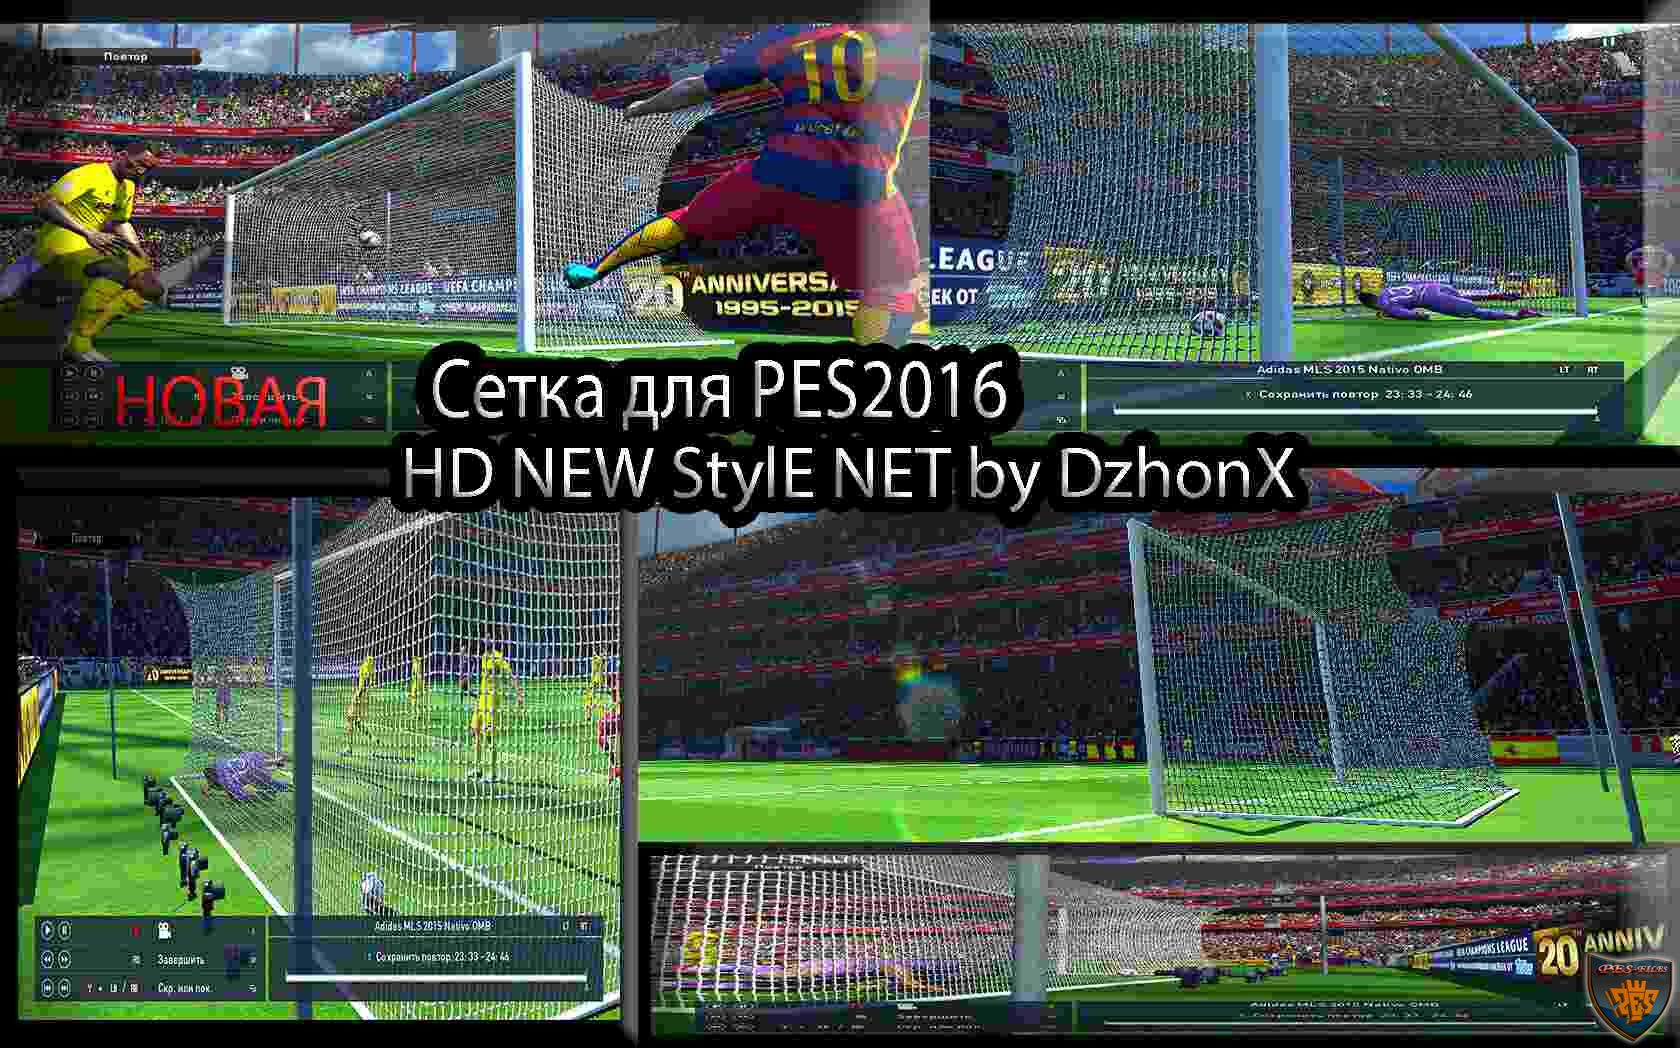 HD New Style NET Pes 2016 by DzhonX